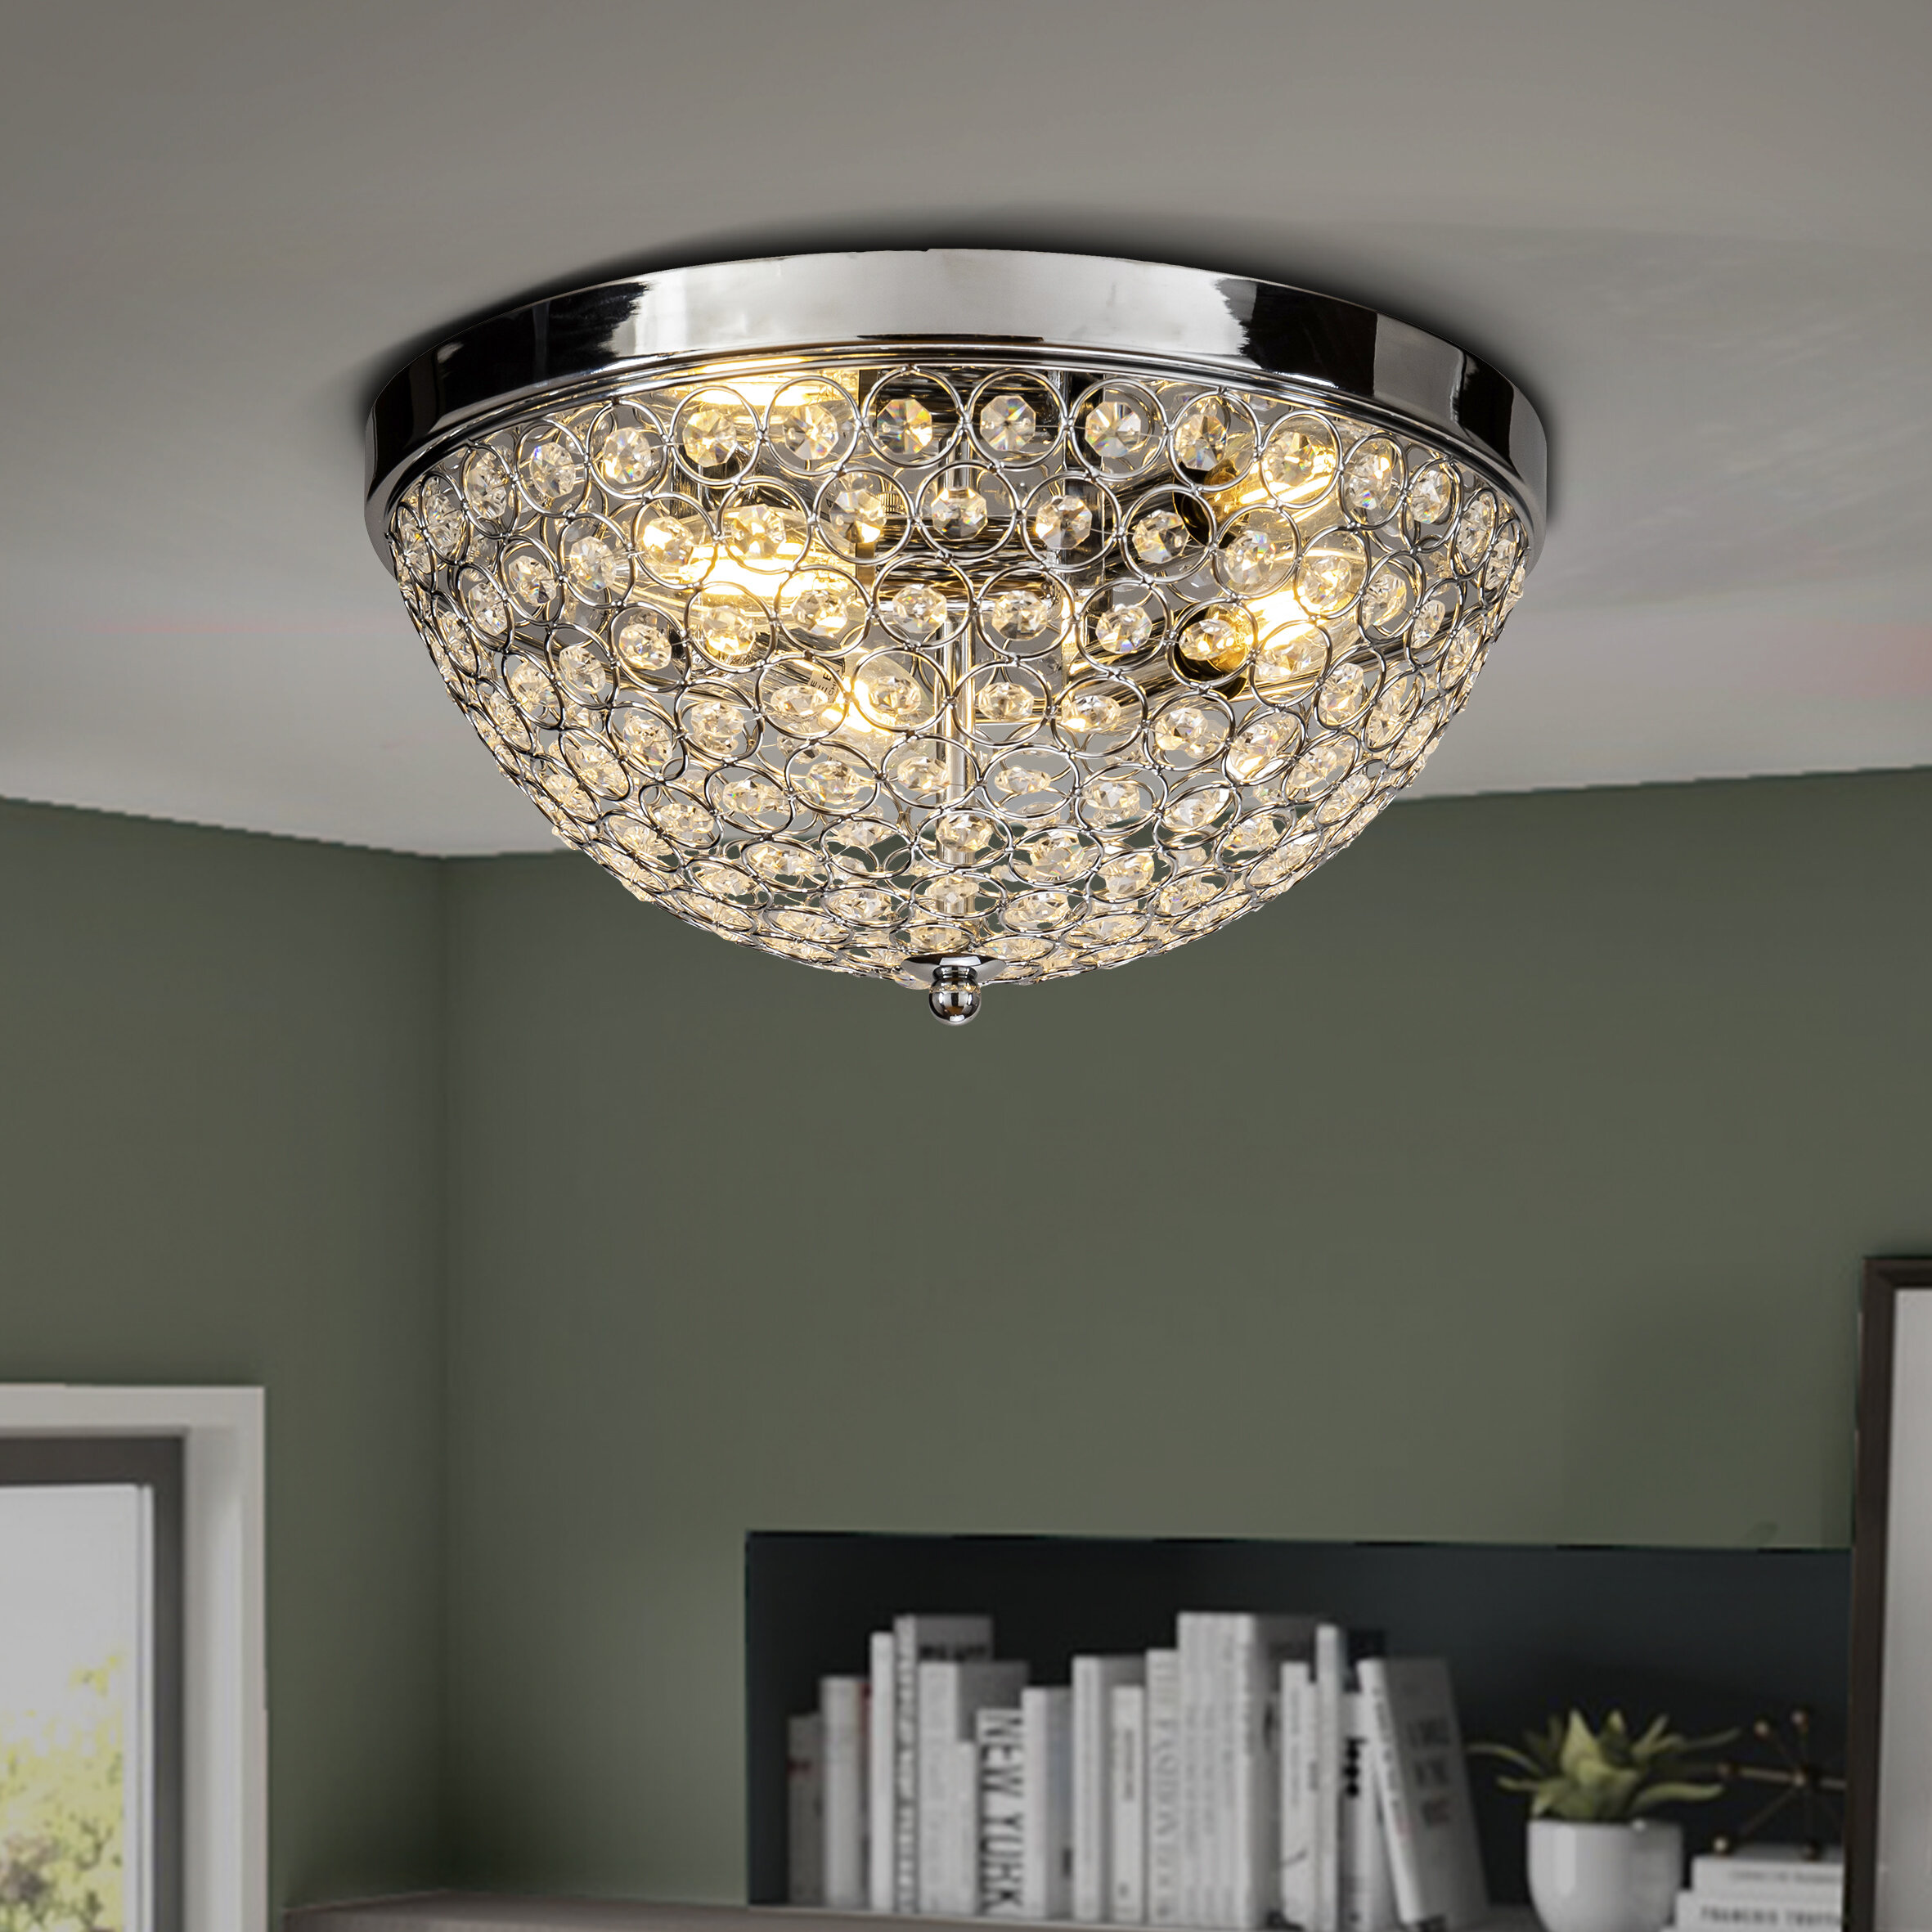 Crystal Accents Silver Chrome Shade Flush Mount Lighting You Ll Love In 2021 Wayfair